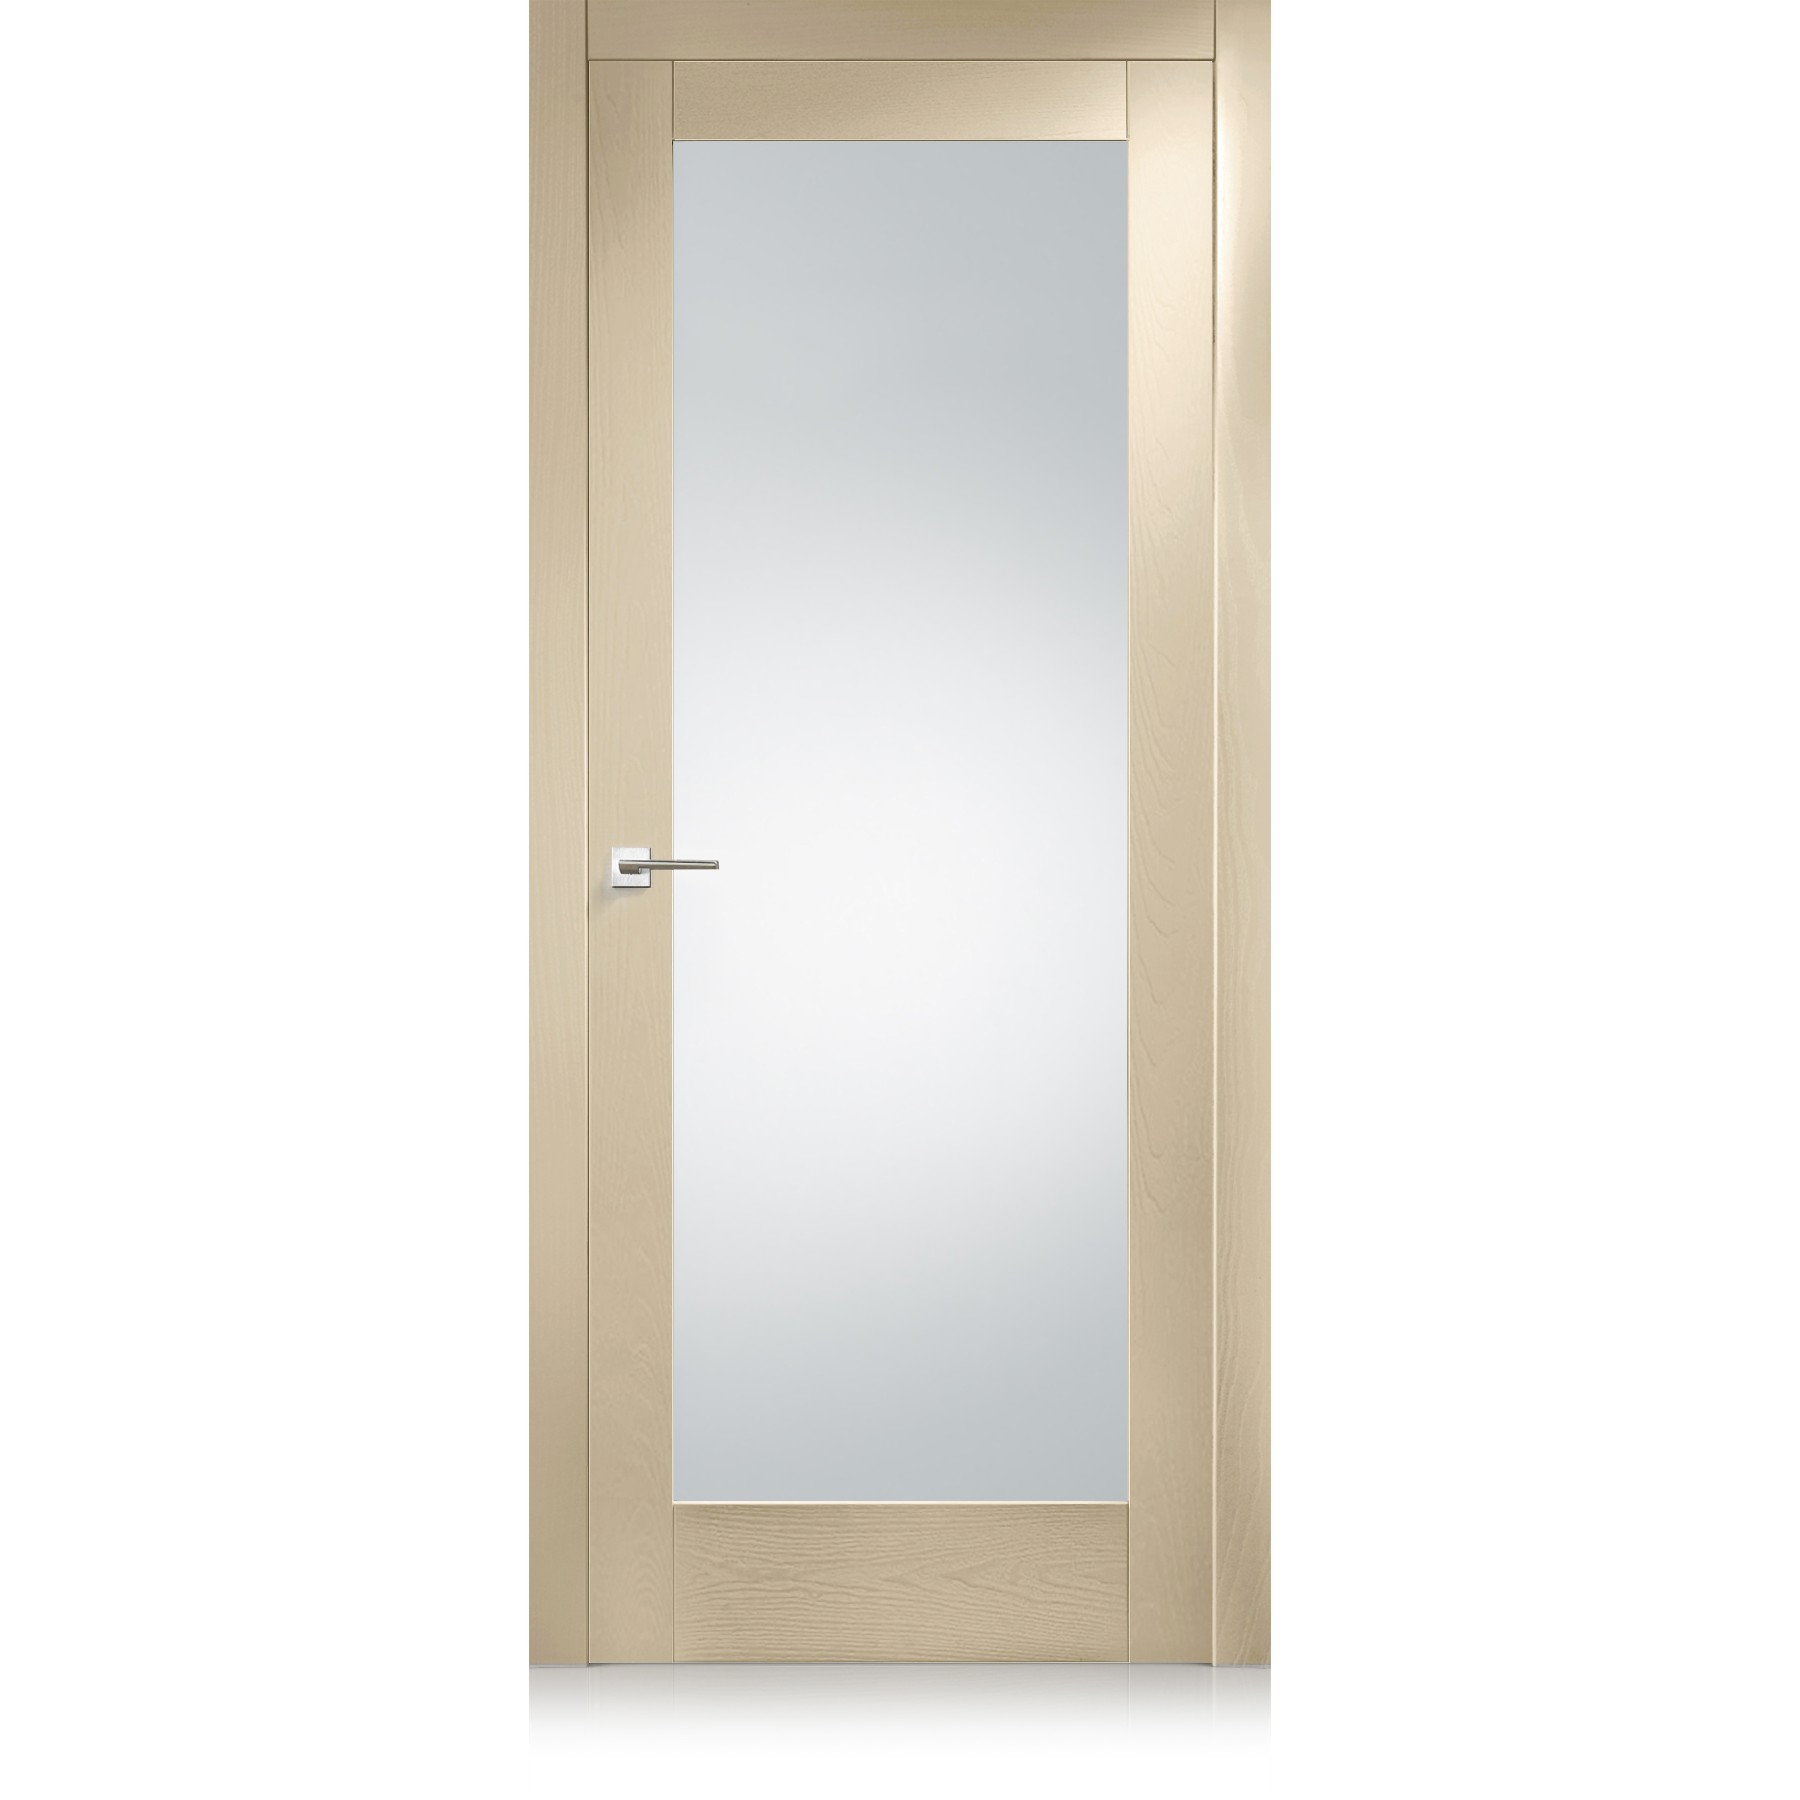 Suite / 21 trame cremy door